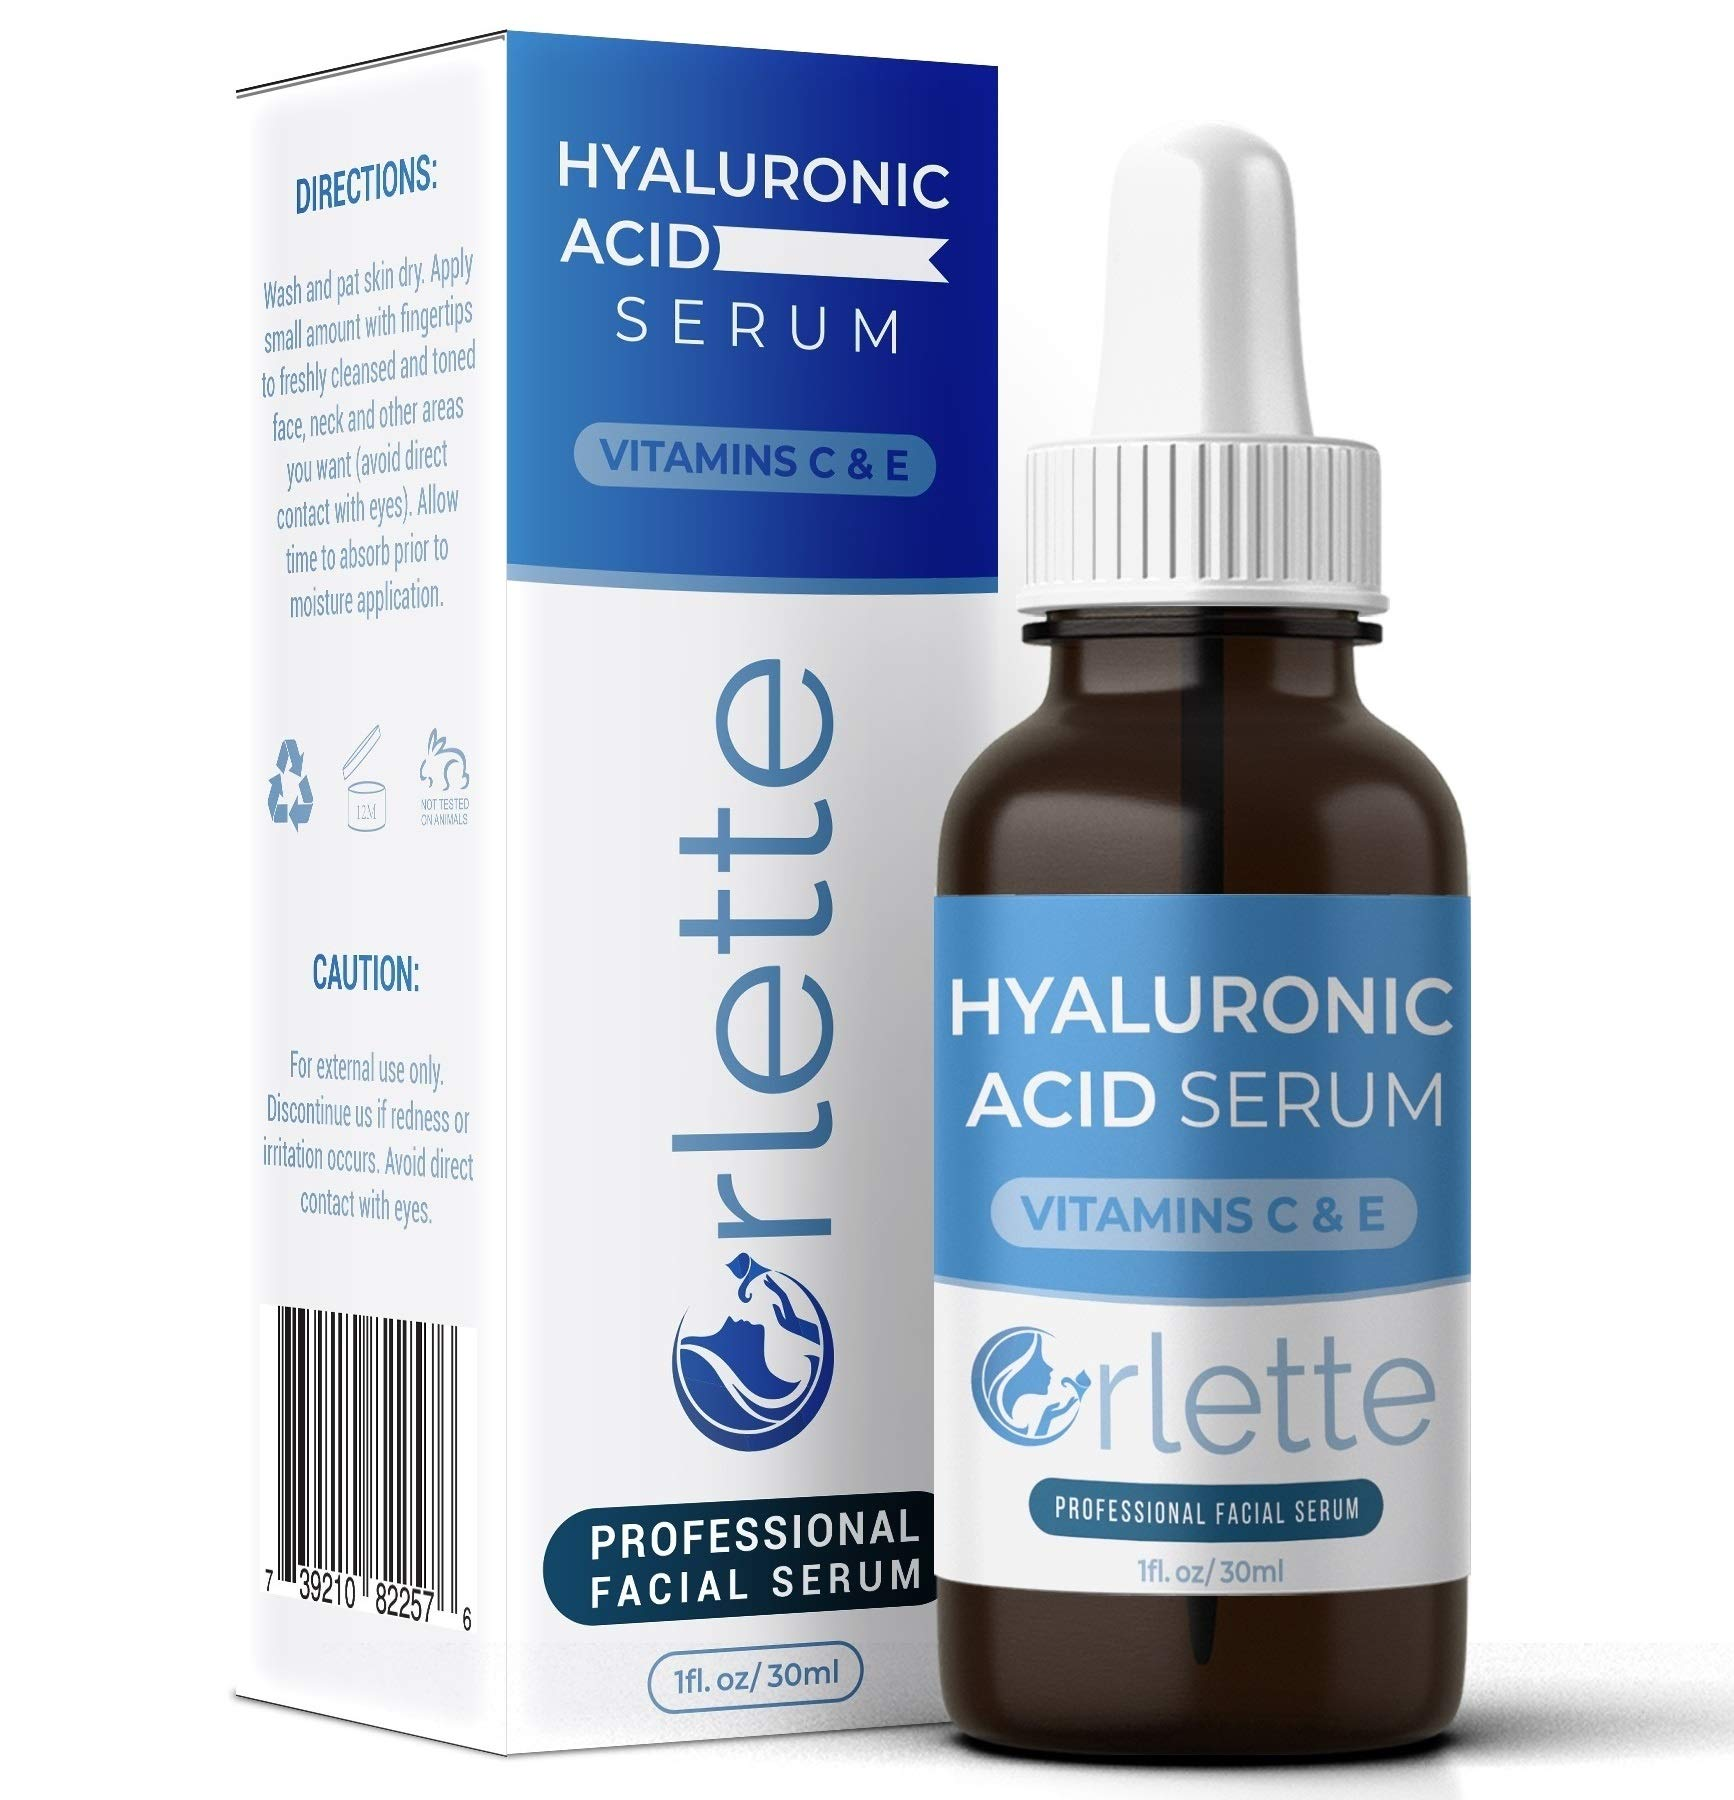 Orlette Hyaluronic Acid Serum Skin Care - Anti-Aging Treatment with Hydrating Vitamin C and Vitamin E - Hydration, Moisturizing and Fine Line Wrinkle Filler - Acne Scar Lightening, Face Plumper by Orlette